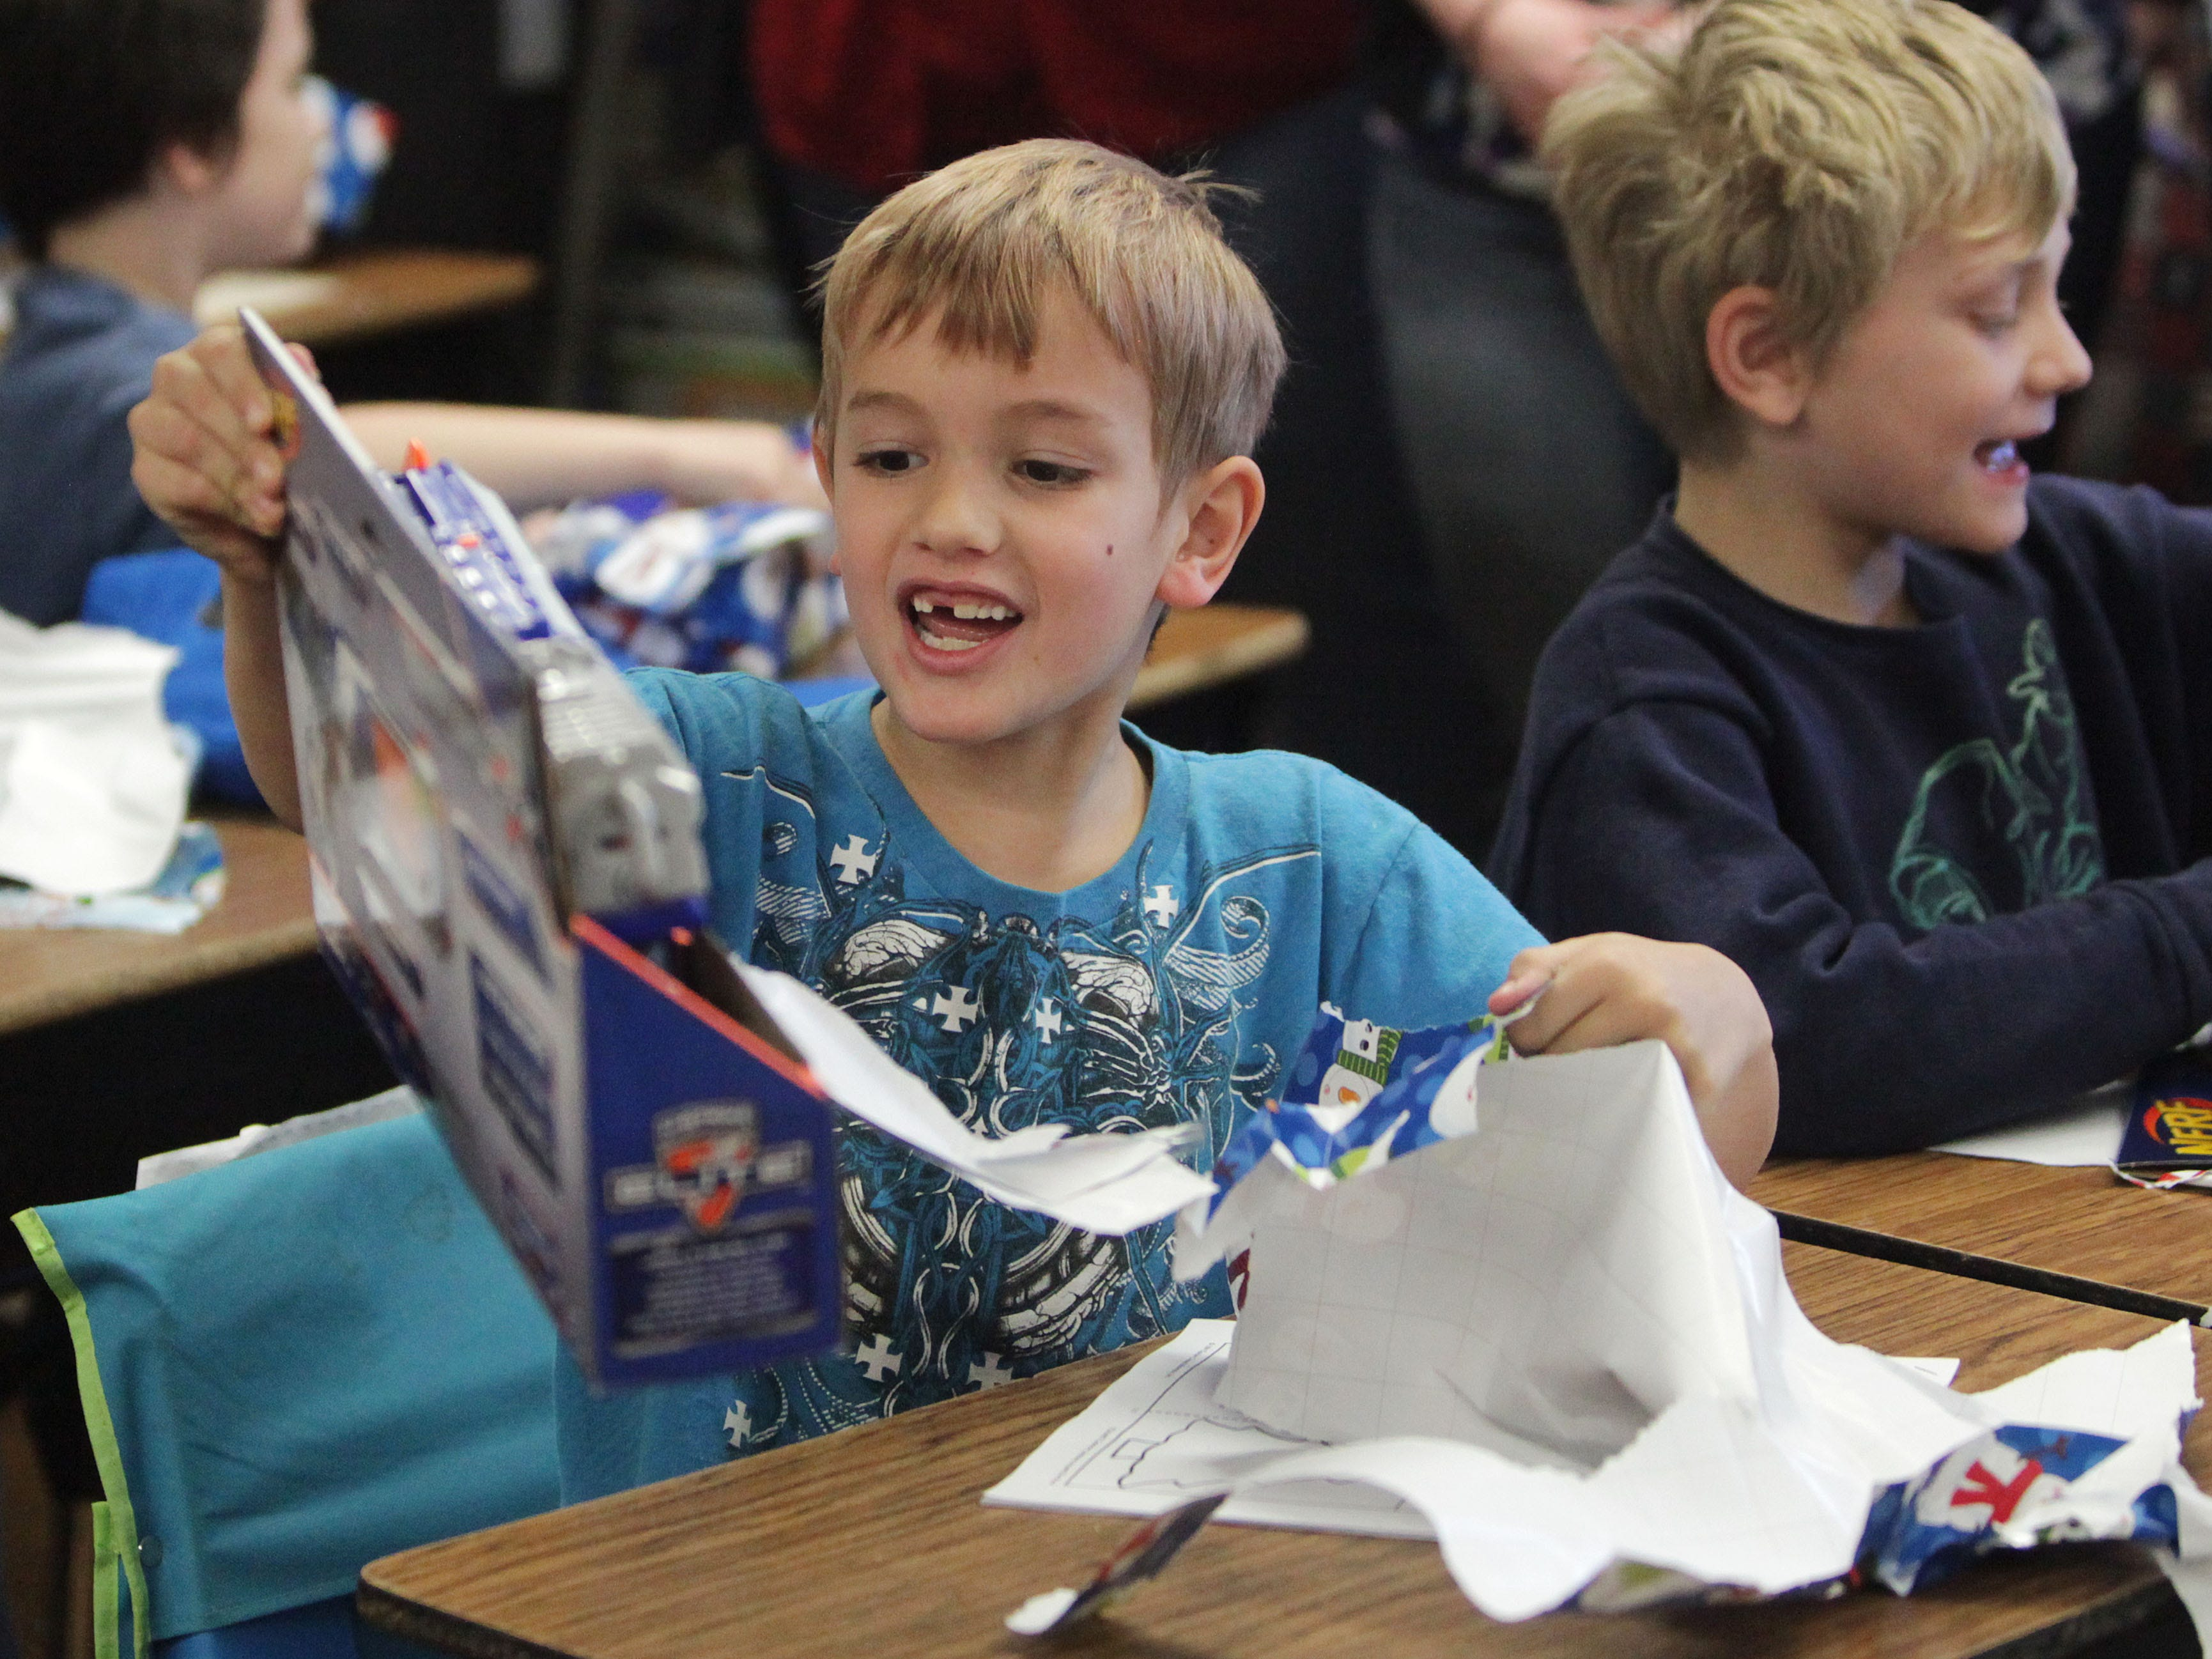 Harrison Adcock opens a present provided by CU Credit Union employees at Boyd Elementary on Wednesday, December 18, 2013.